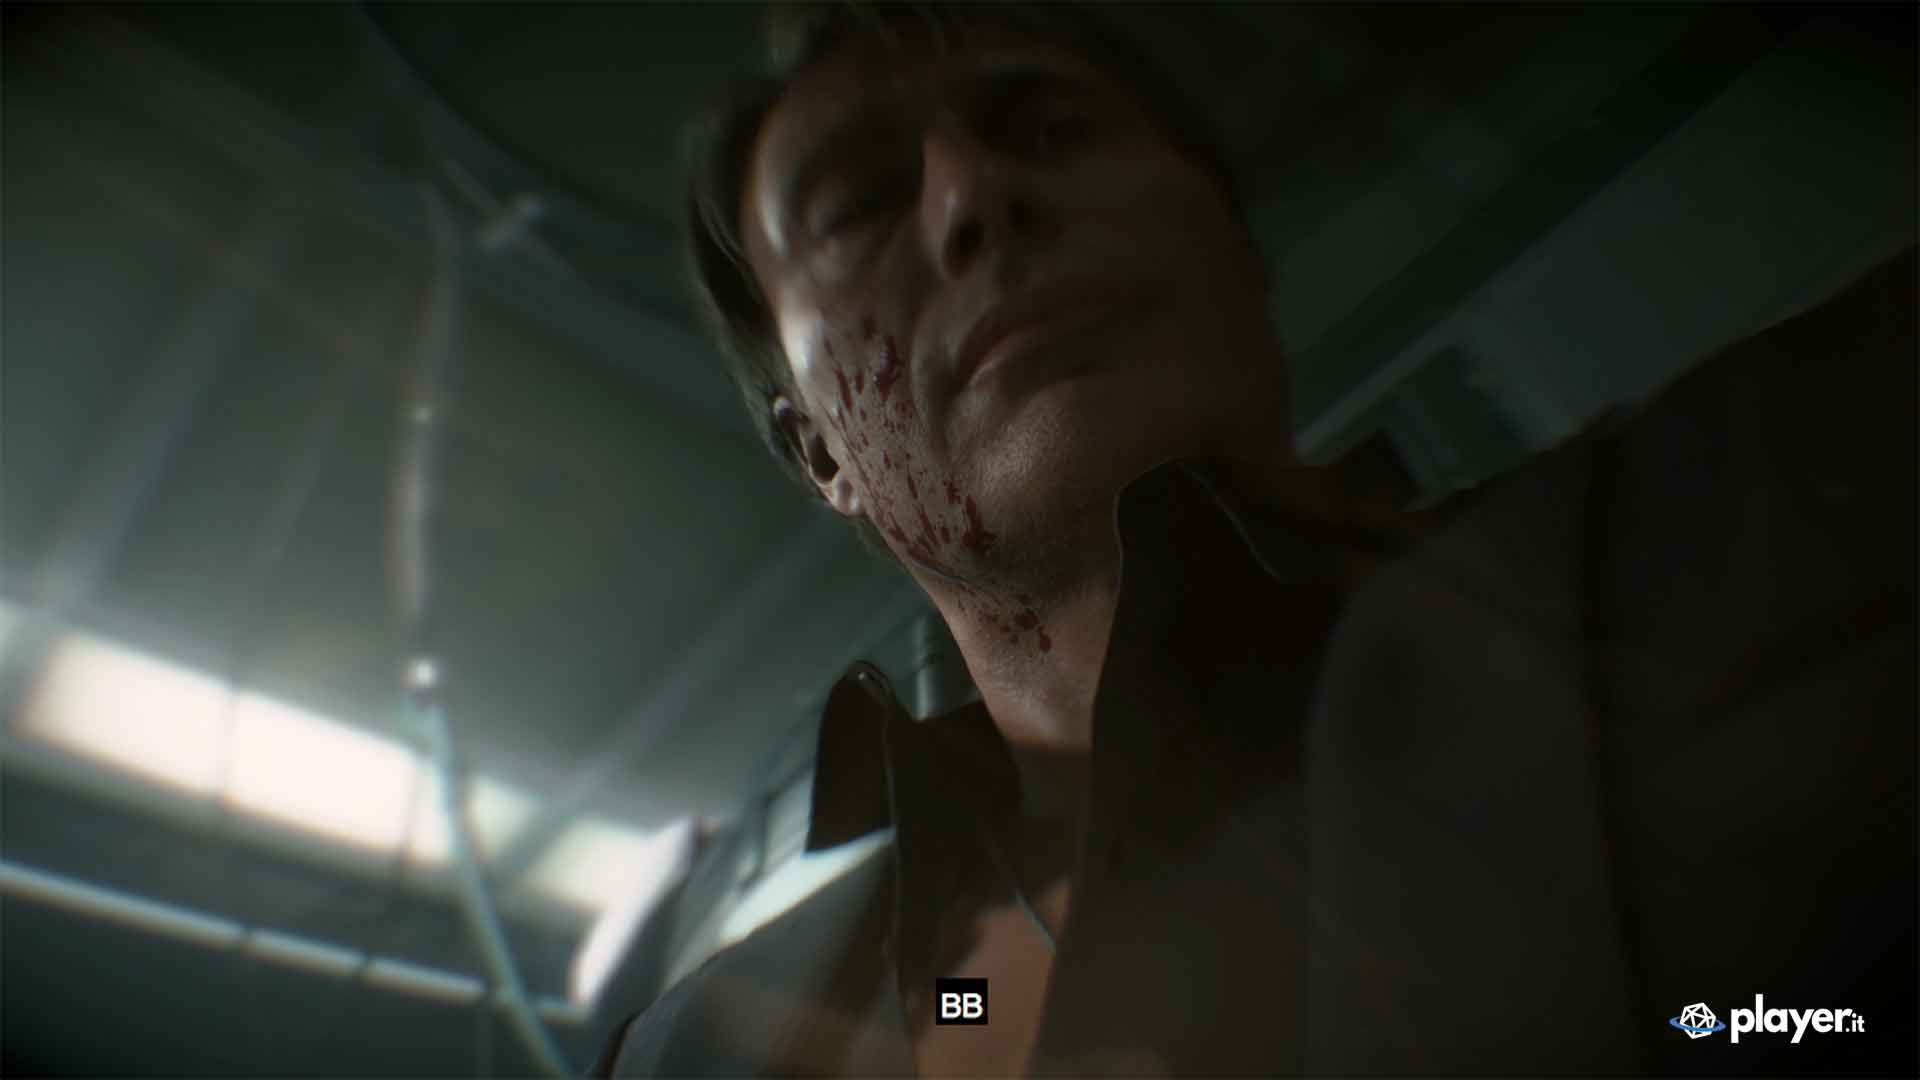 analisi trailer death stranding riferimento a Big Boss di Kojima